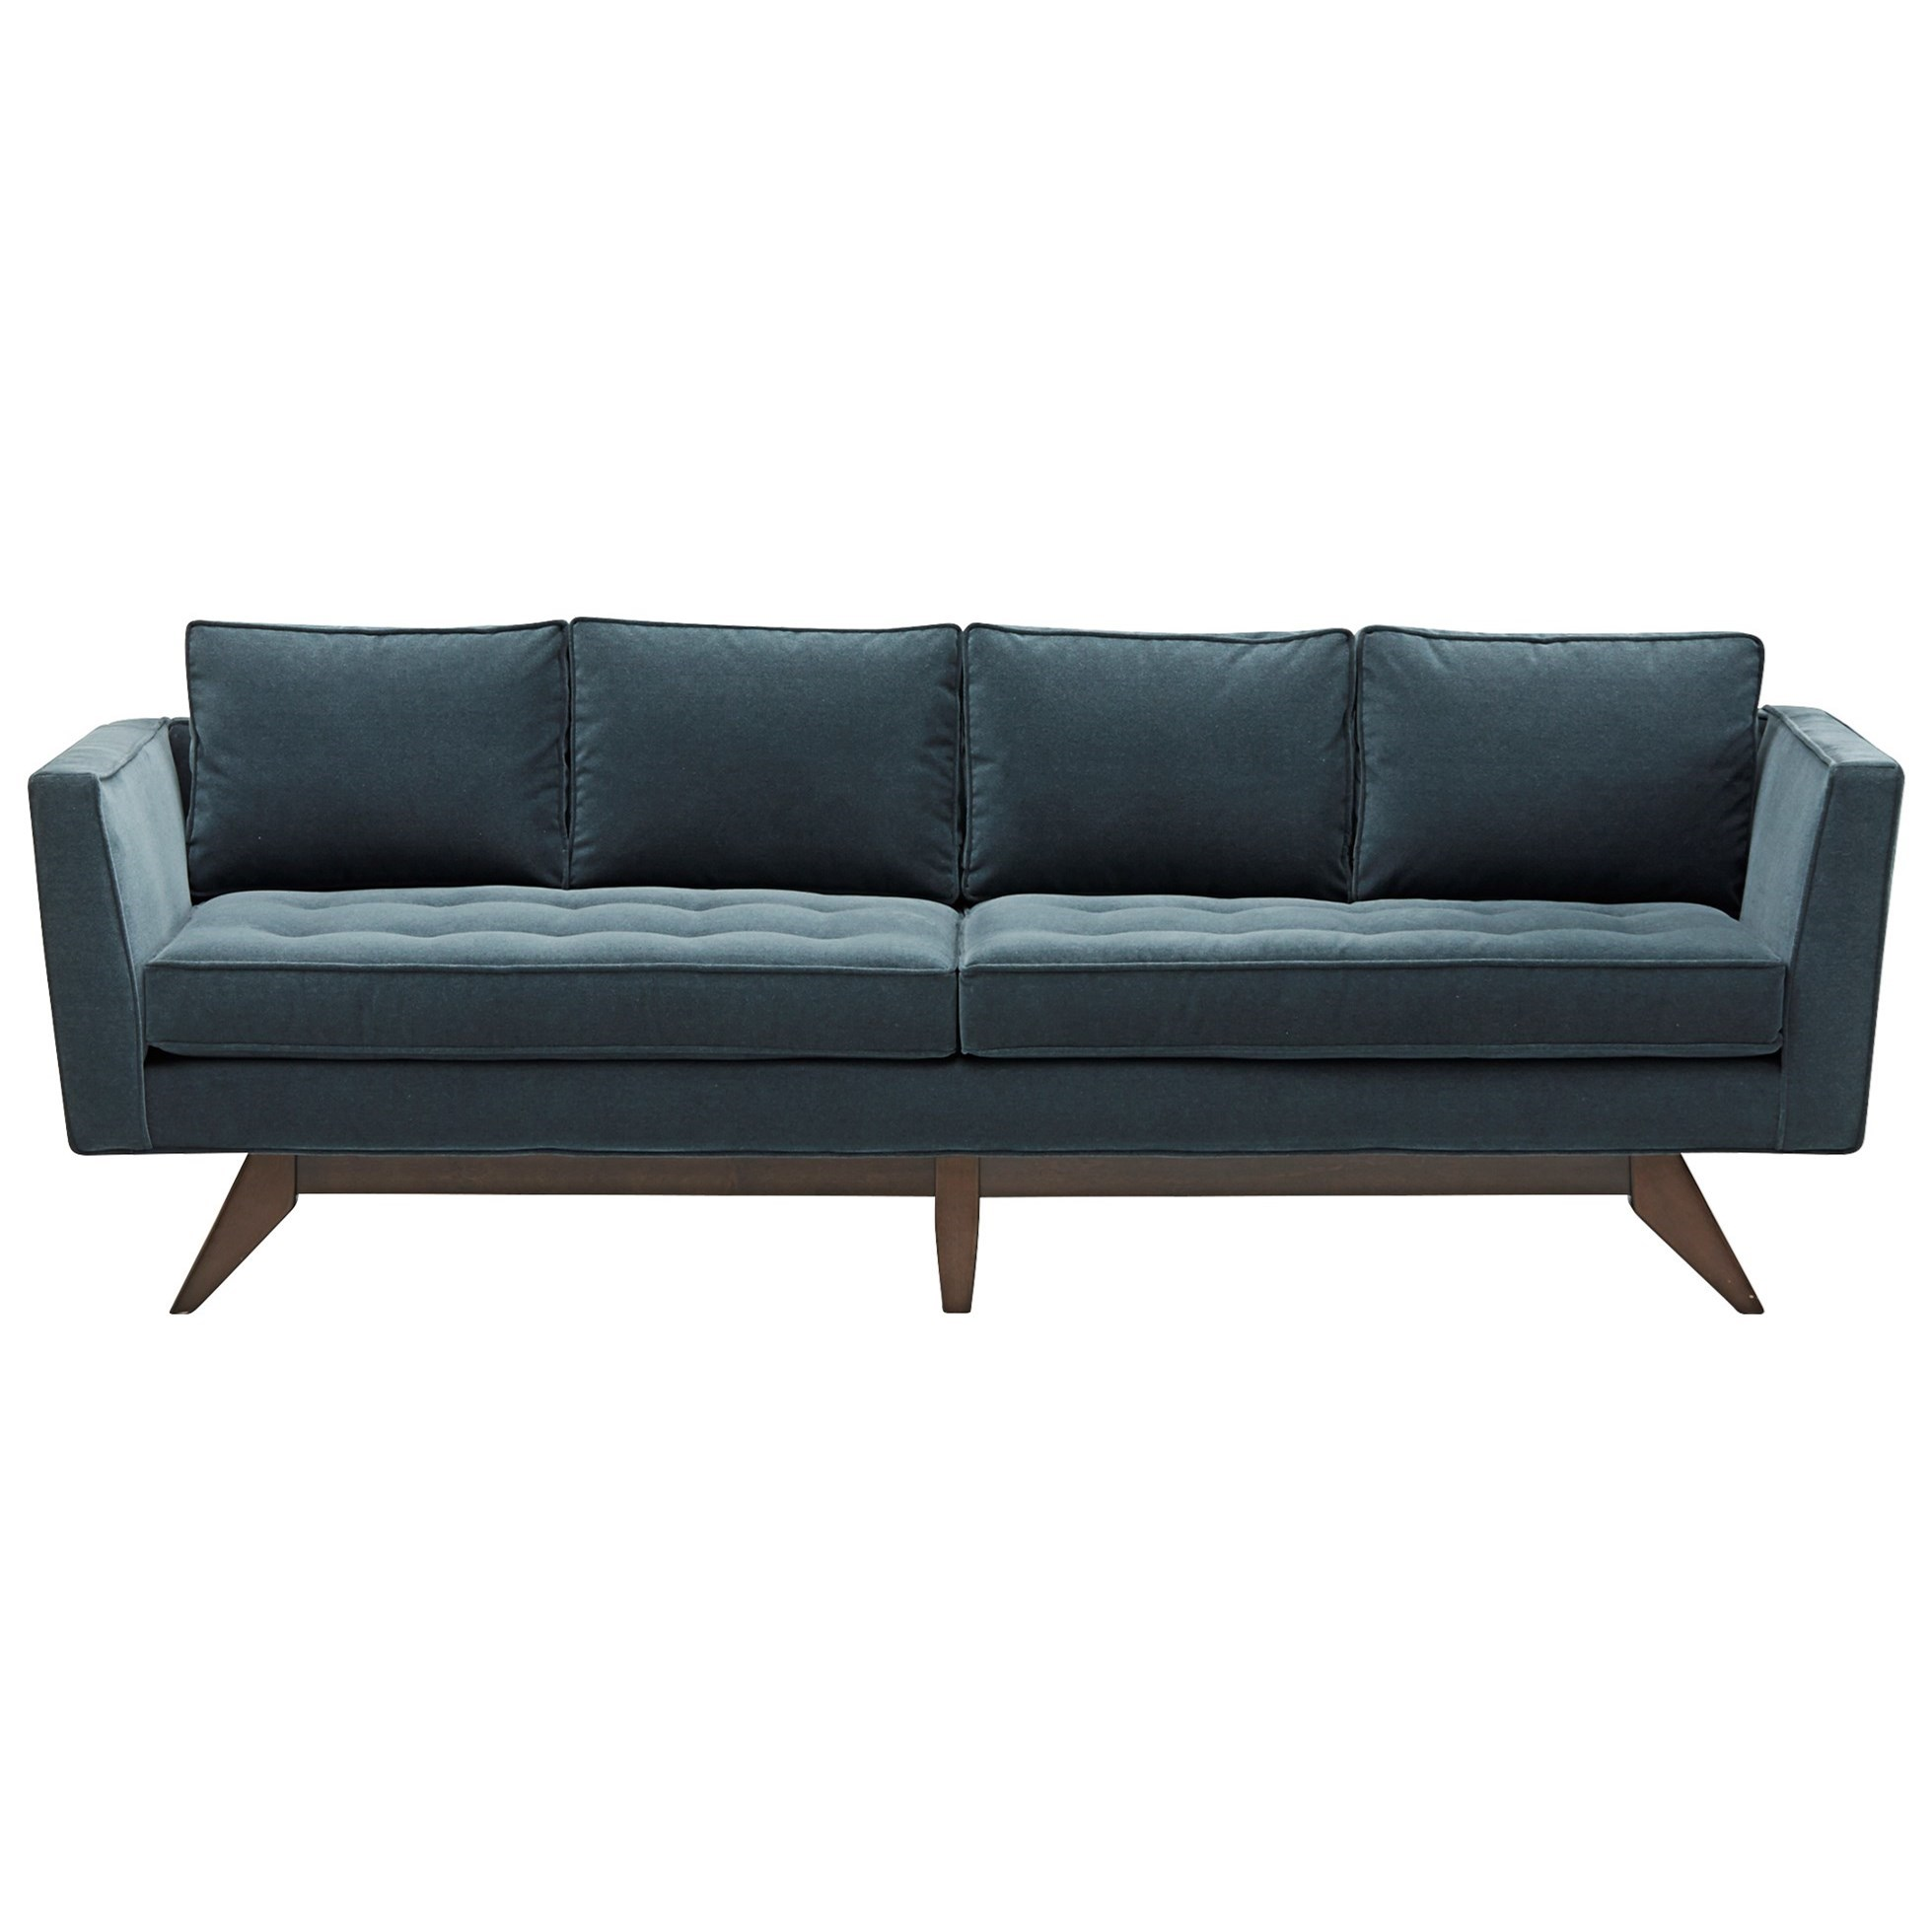 Fairfax Mid-Century Modern Style Sofa with Angled Wood Legs by Klaussner at  Dunk & Bright Furniture